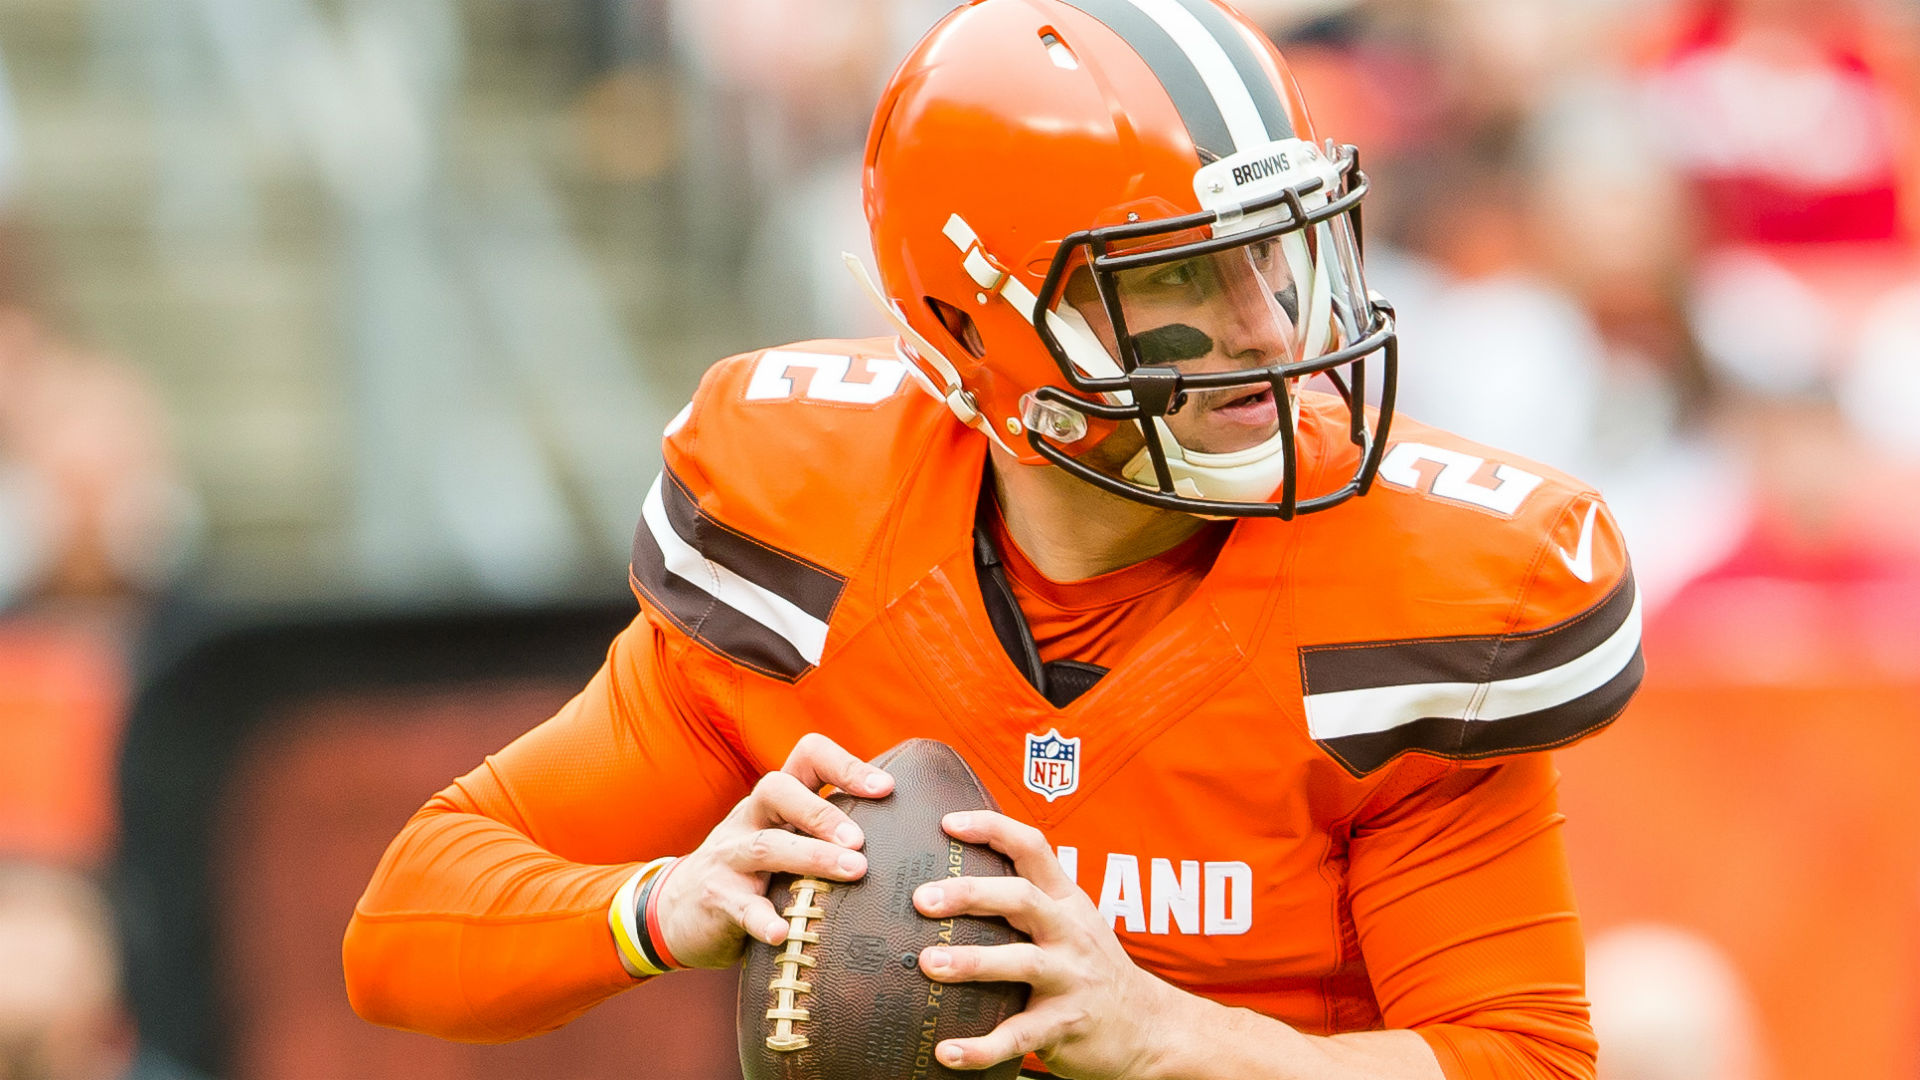 johnny-manziel-121315-usnews-getty-ftr